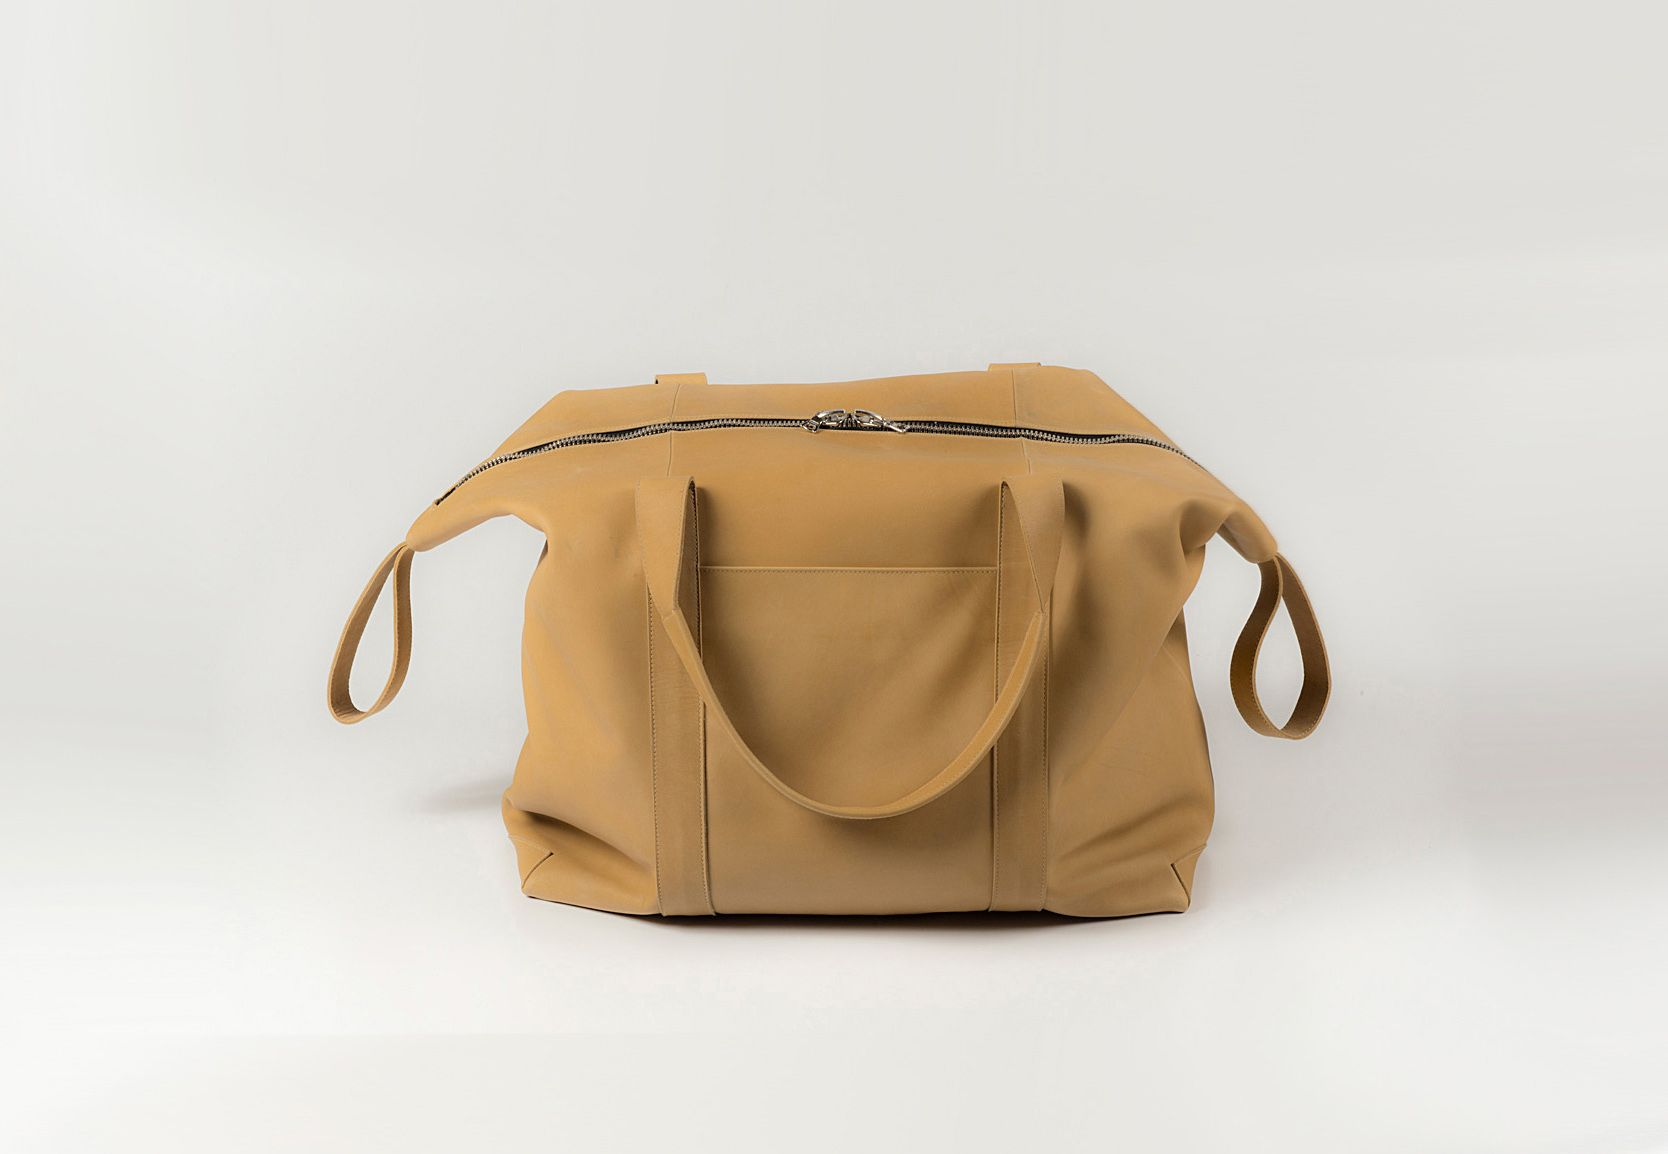 72 Hours Bag by THERE ARE MANY OF US